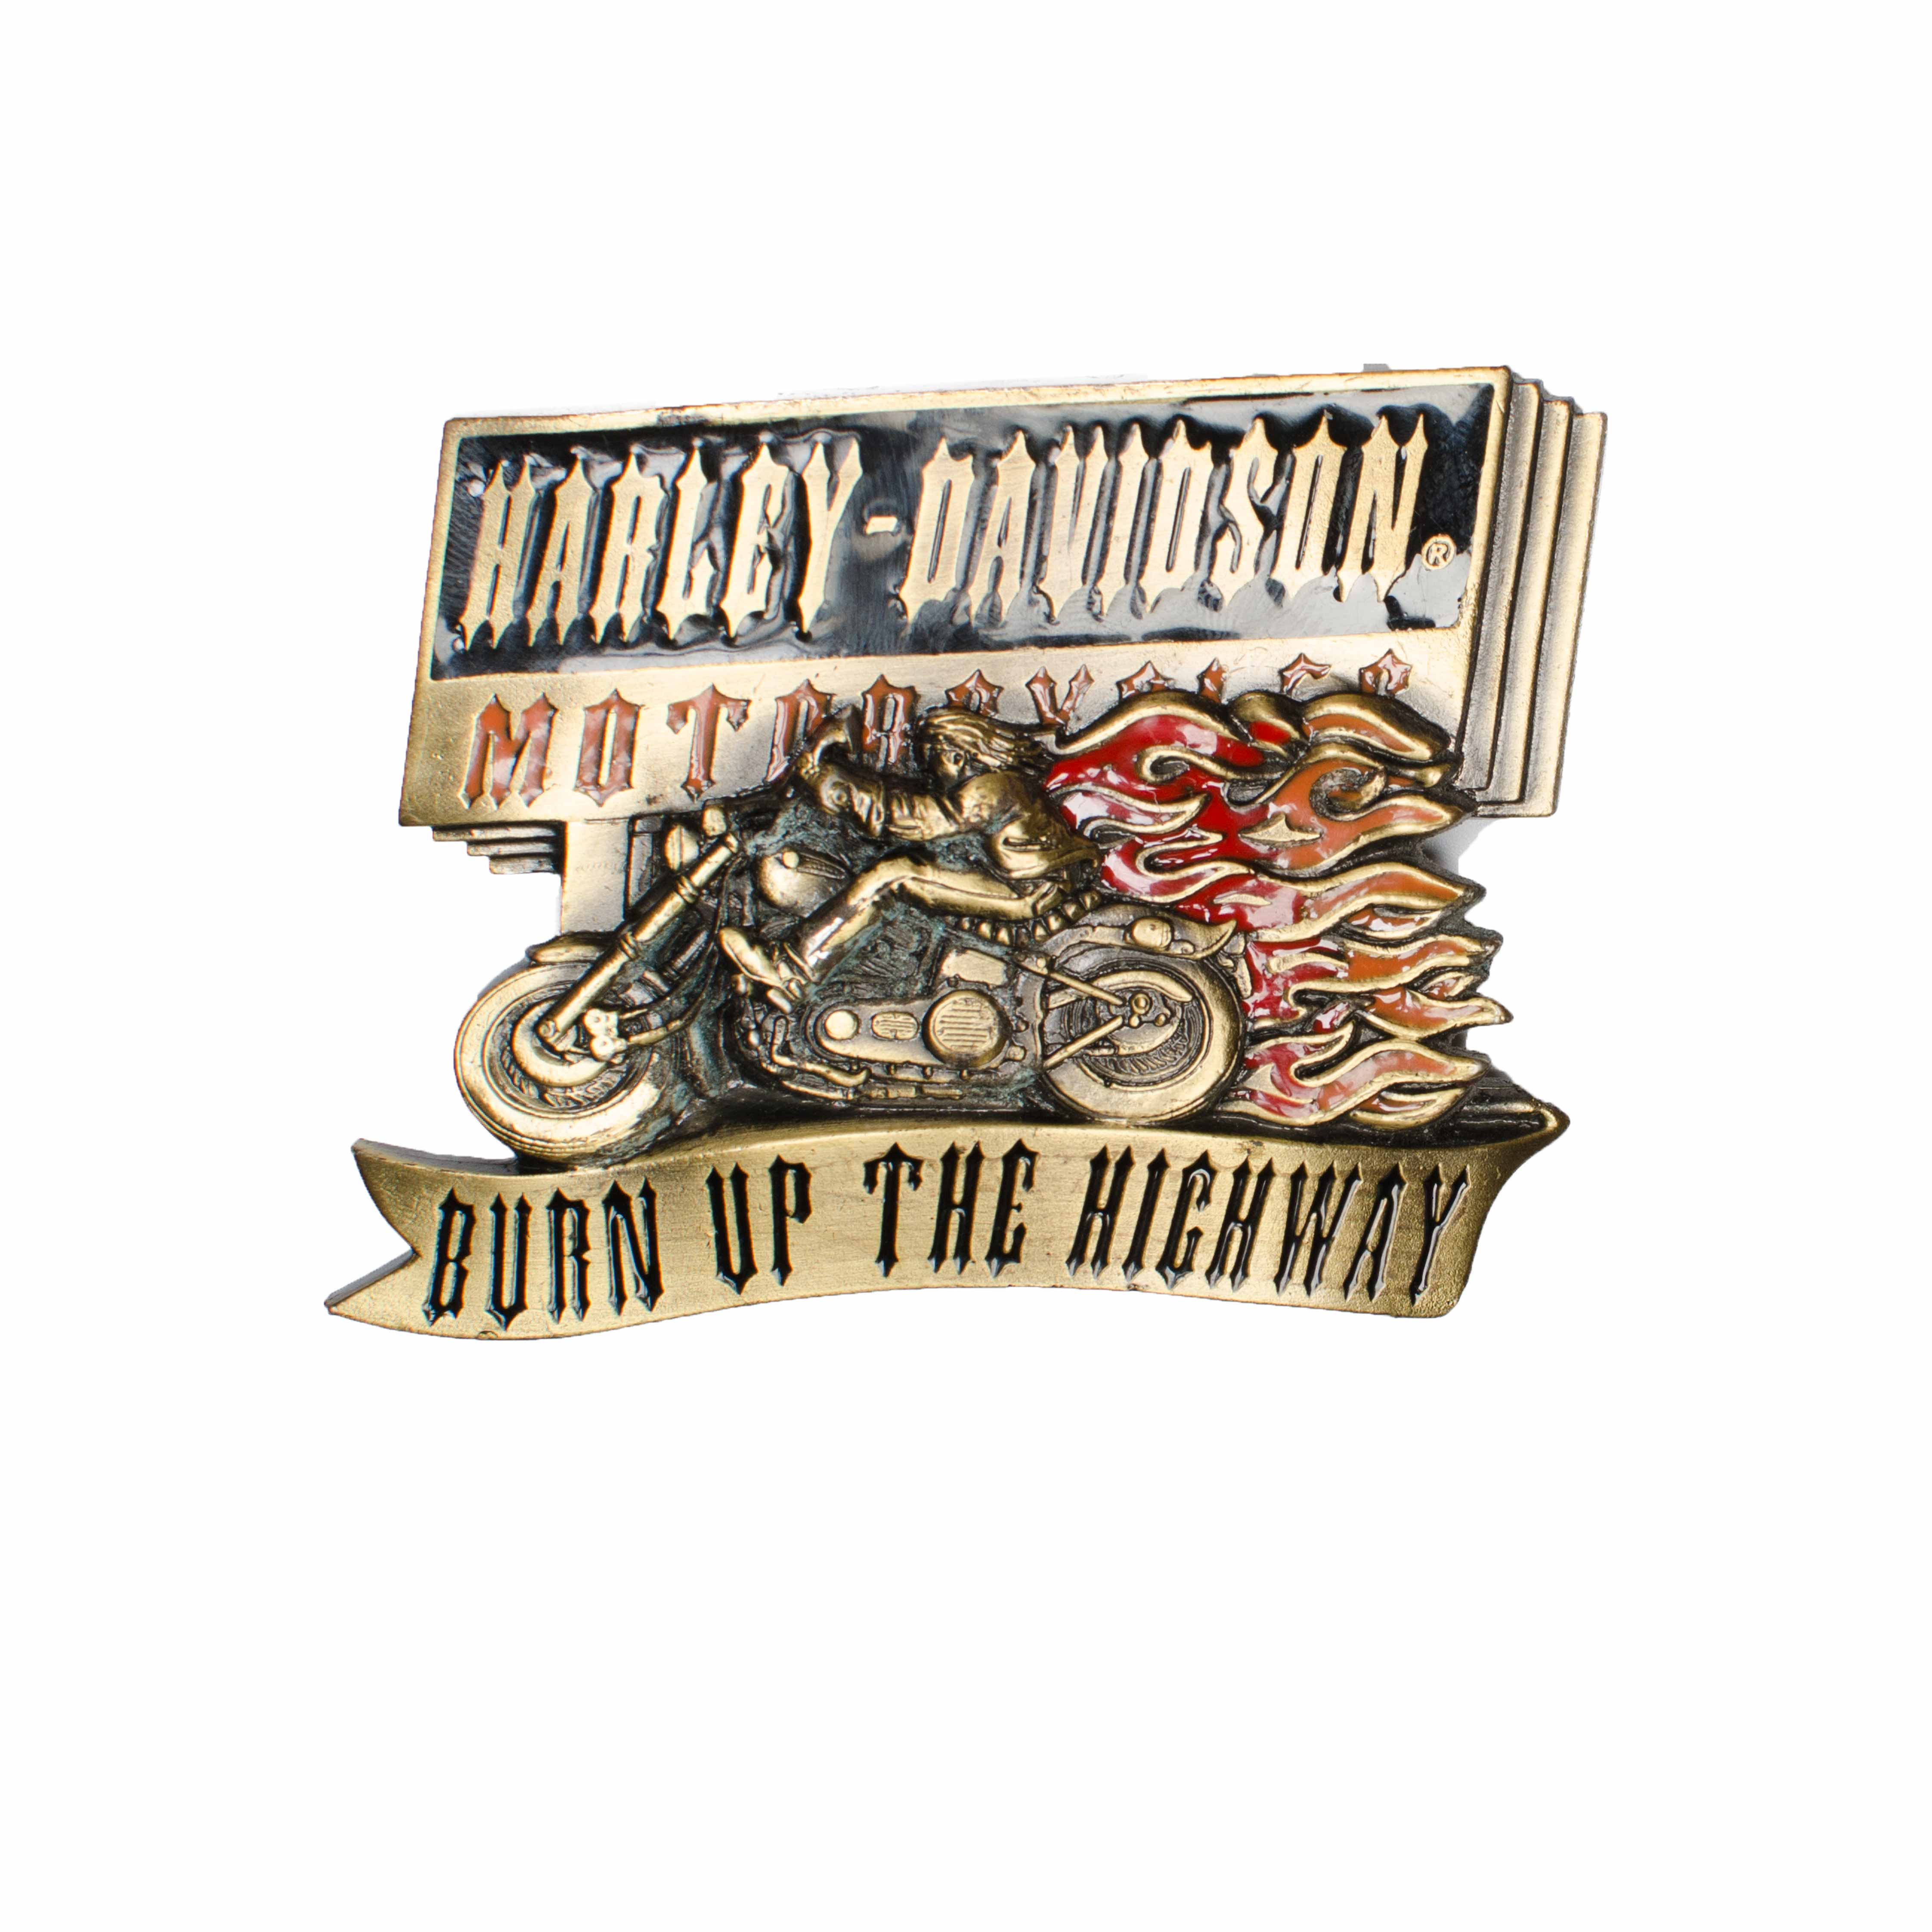 Harley Davidson Burn Up The Highway H429